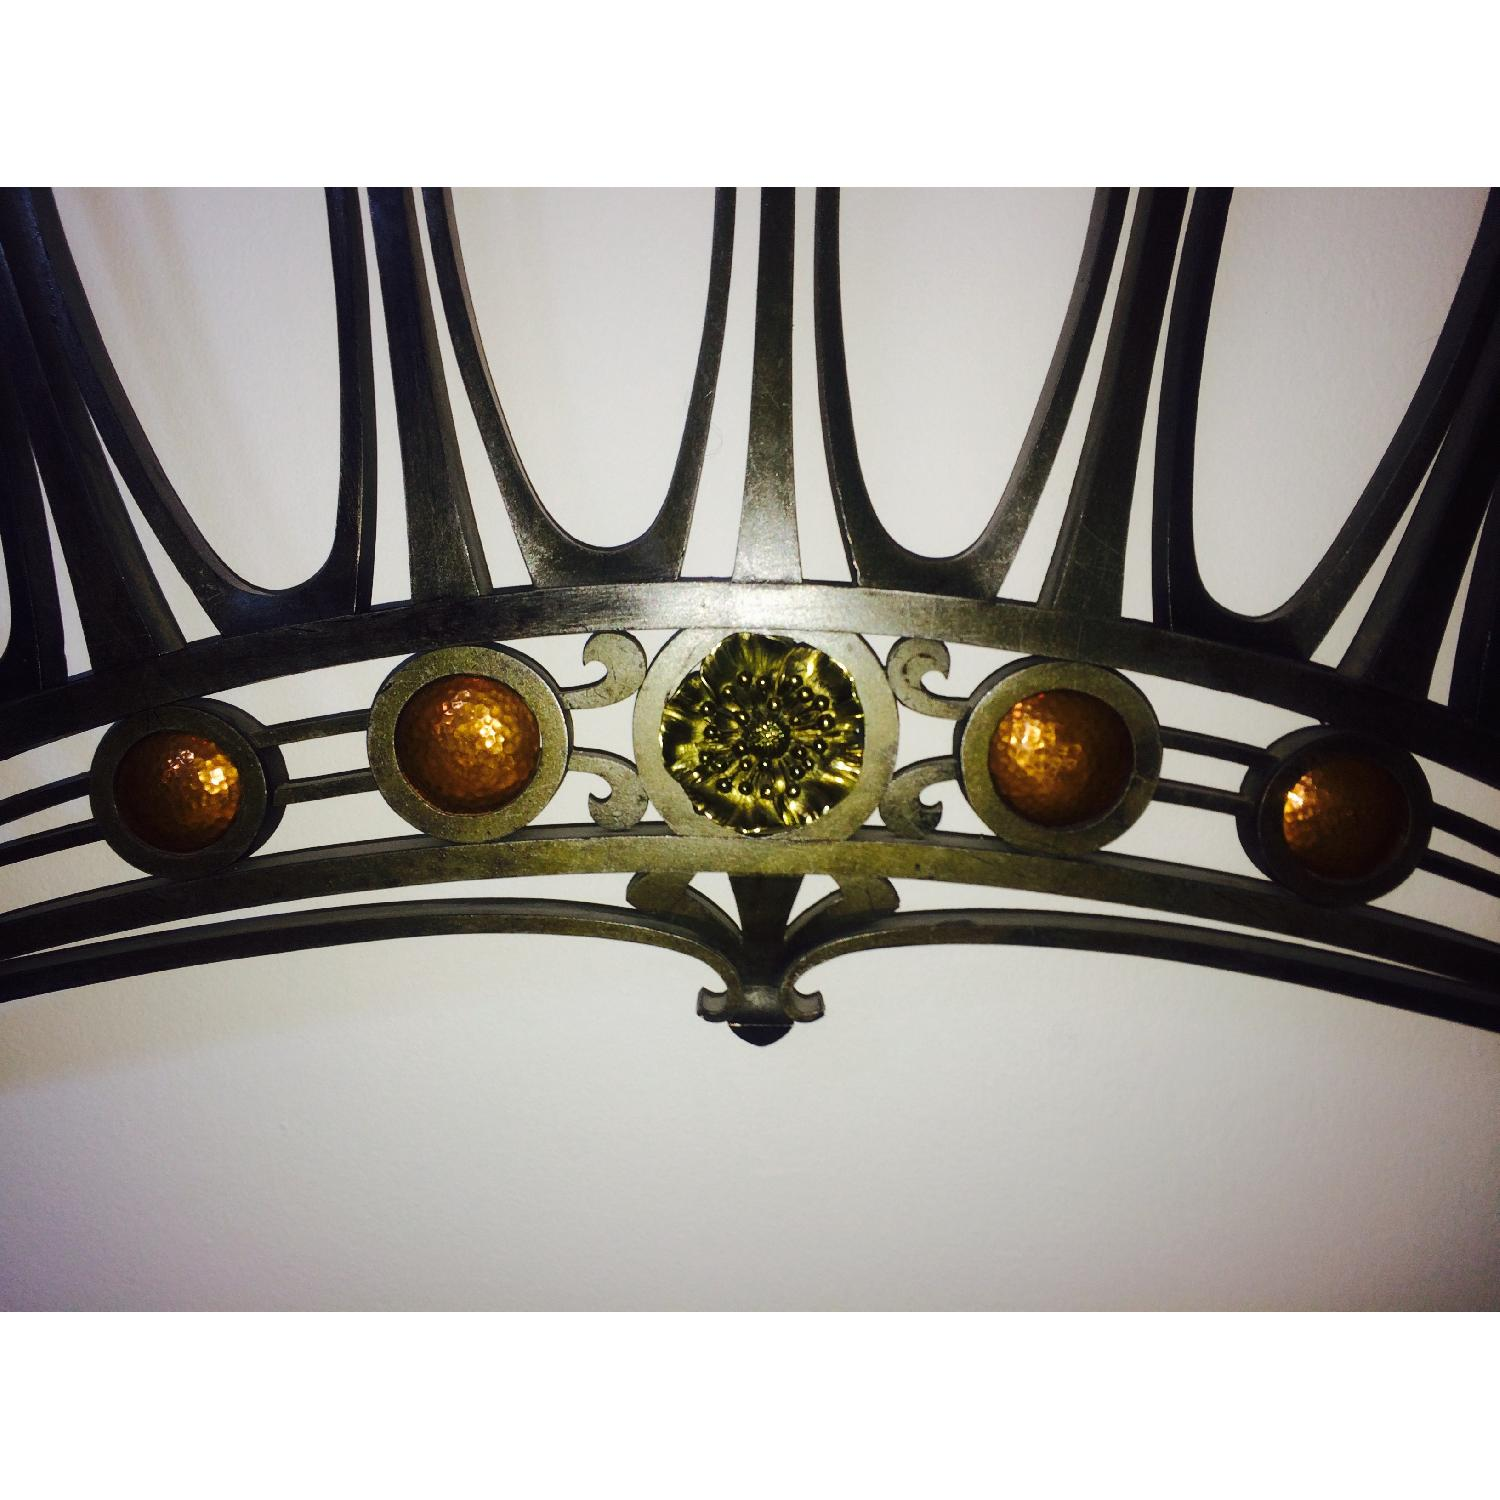 Early 20th-Century French Art Nouveau Wrought Iron and Gilt Bronze Headboard - image-1